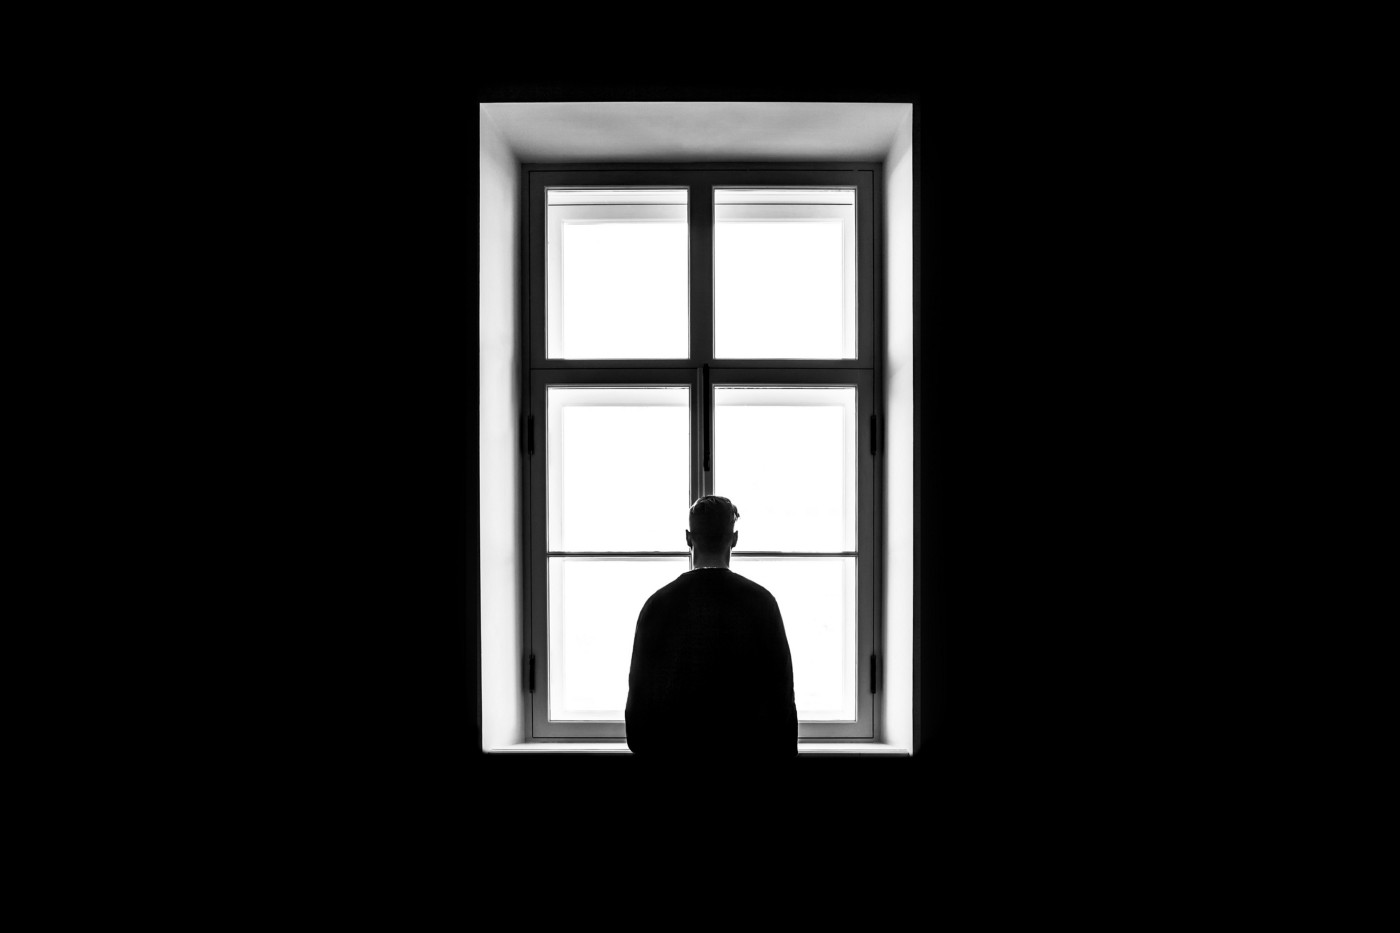 stark black-and-white picture of a man with slumped shoulders looking out a window